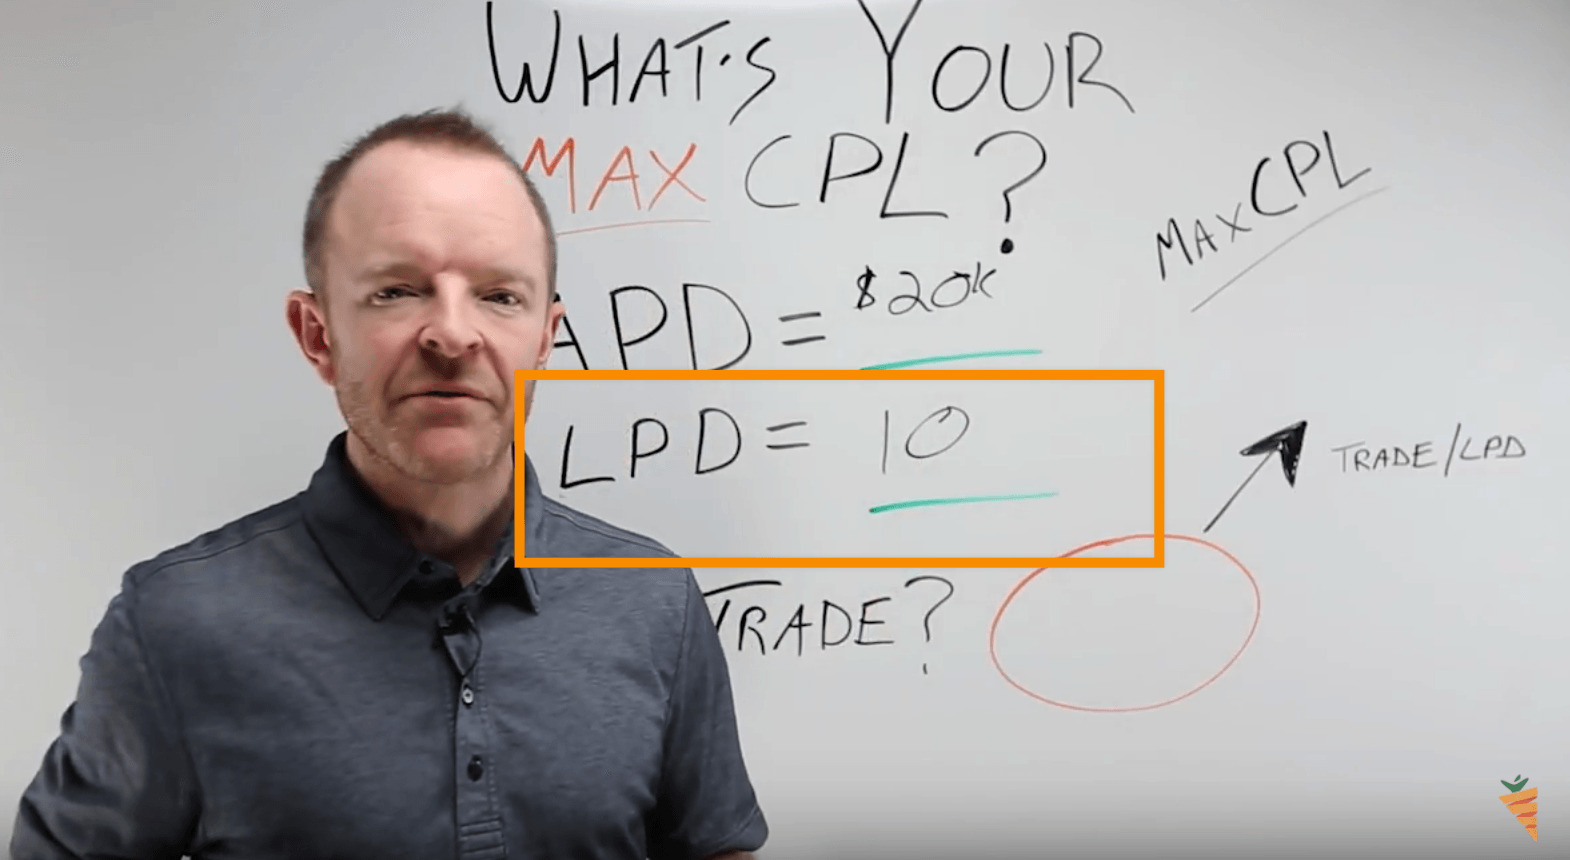 calculating your max cost per lead: lead per deal